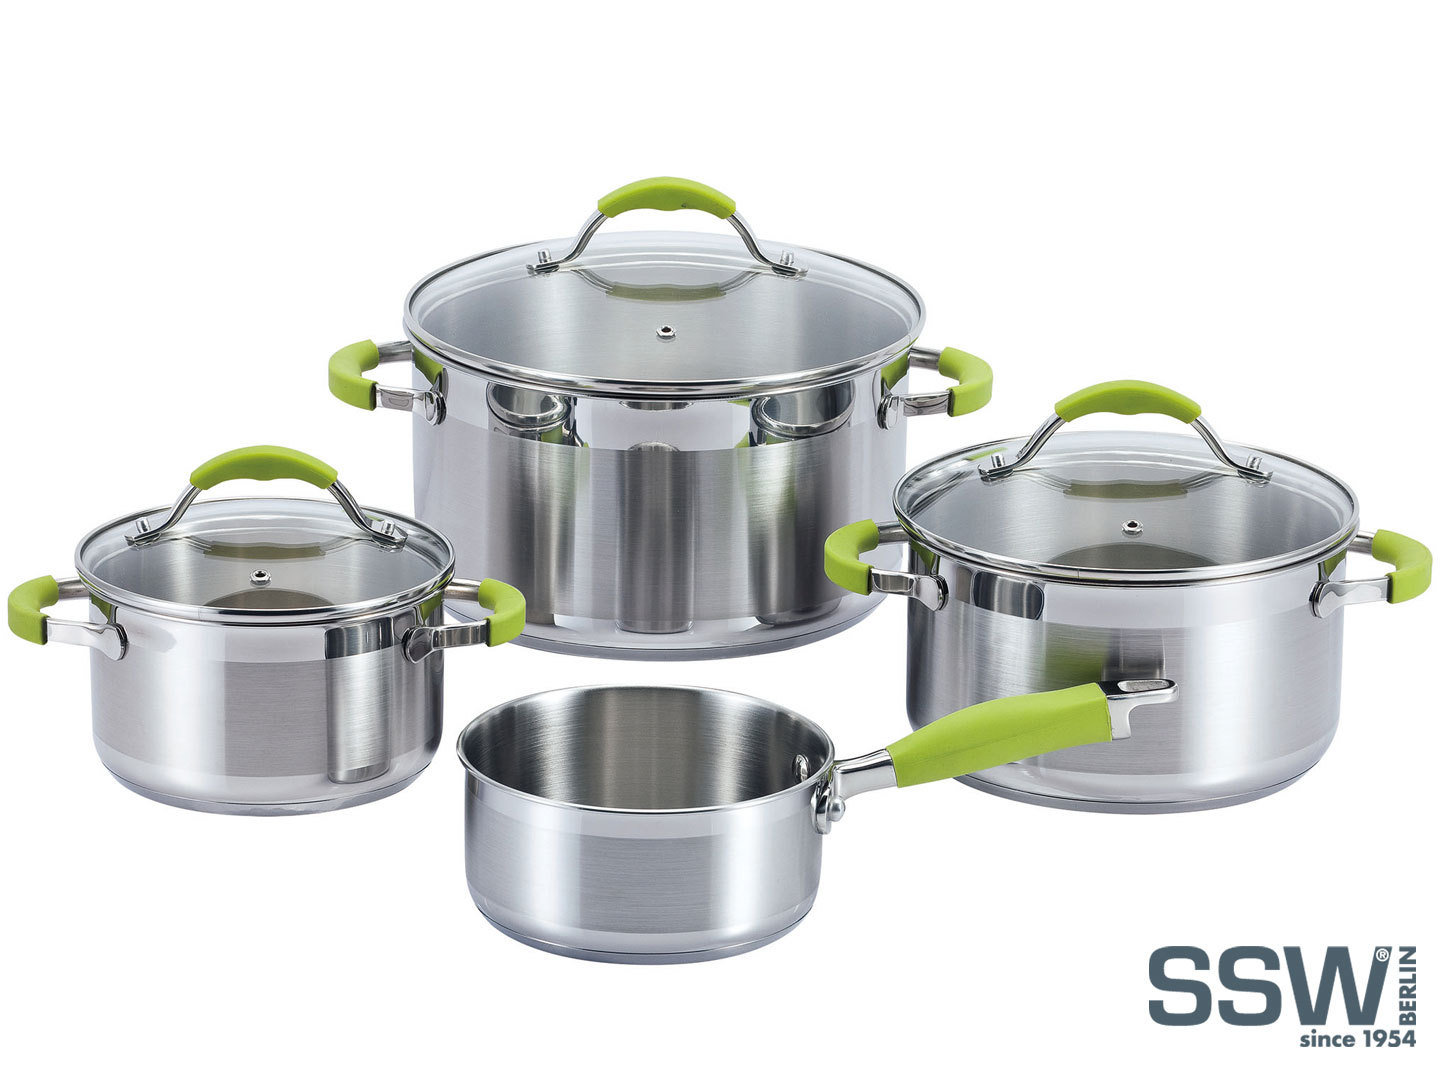 SSW casserole set GREEN APPLE stainless steel with silicone handles